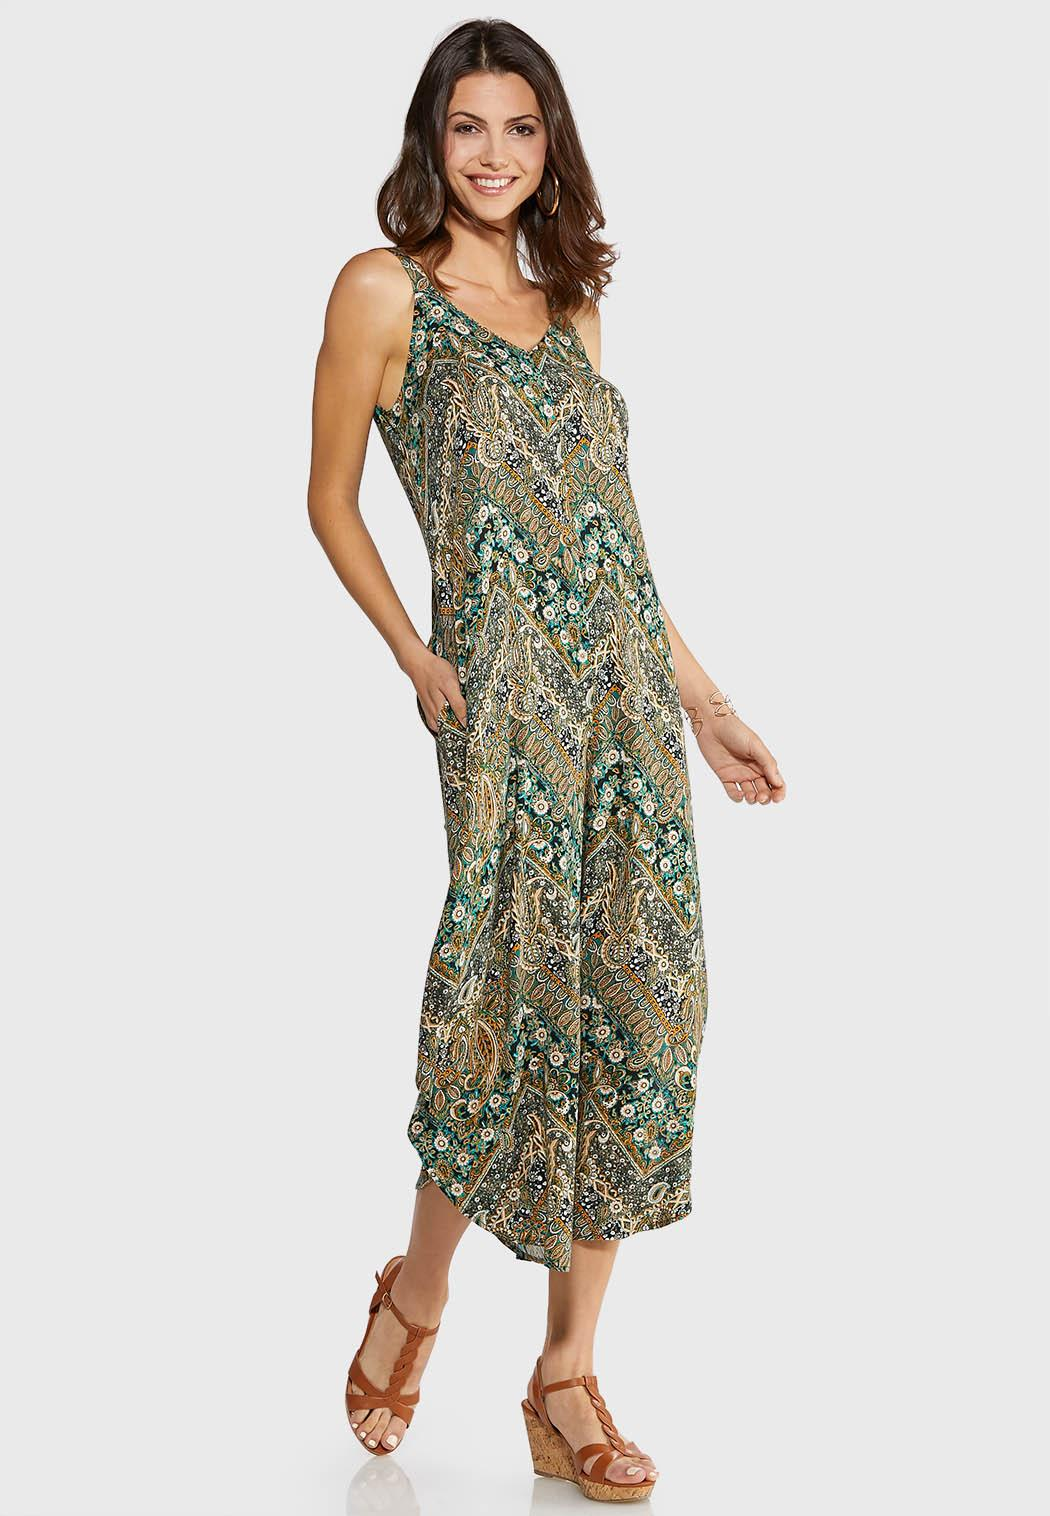 4704bb31945d7 Women's Dresses- Fit and Flare, Swing, Maxi, Midi & More Affordable Dresses